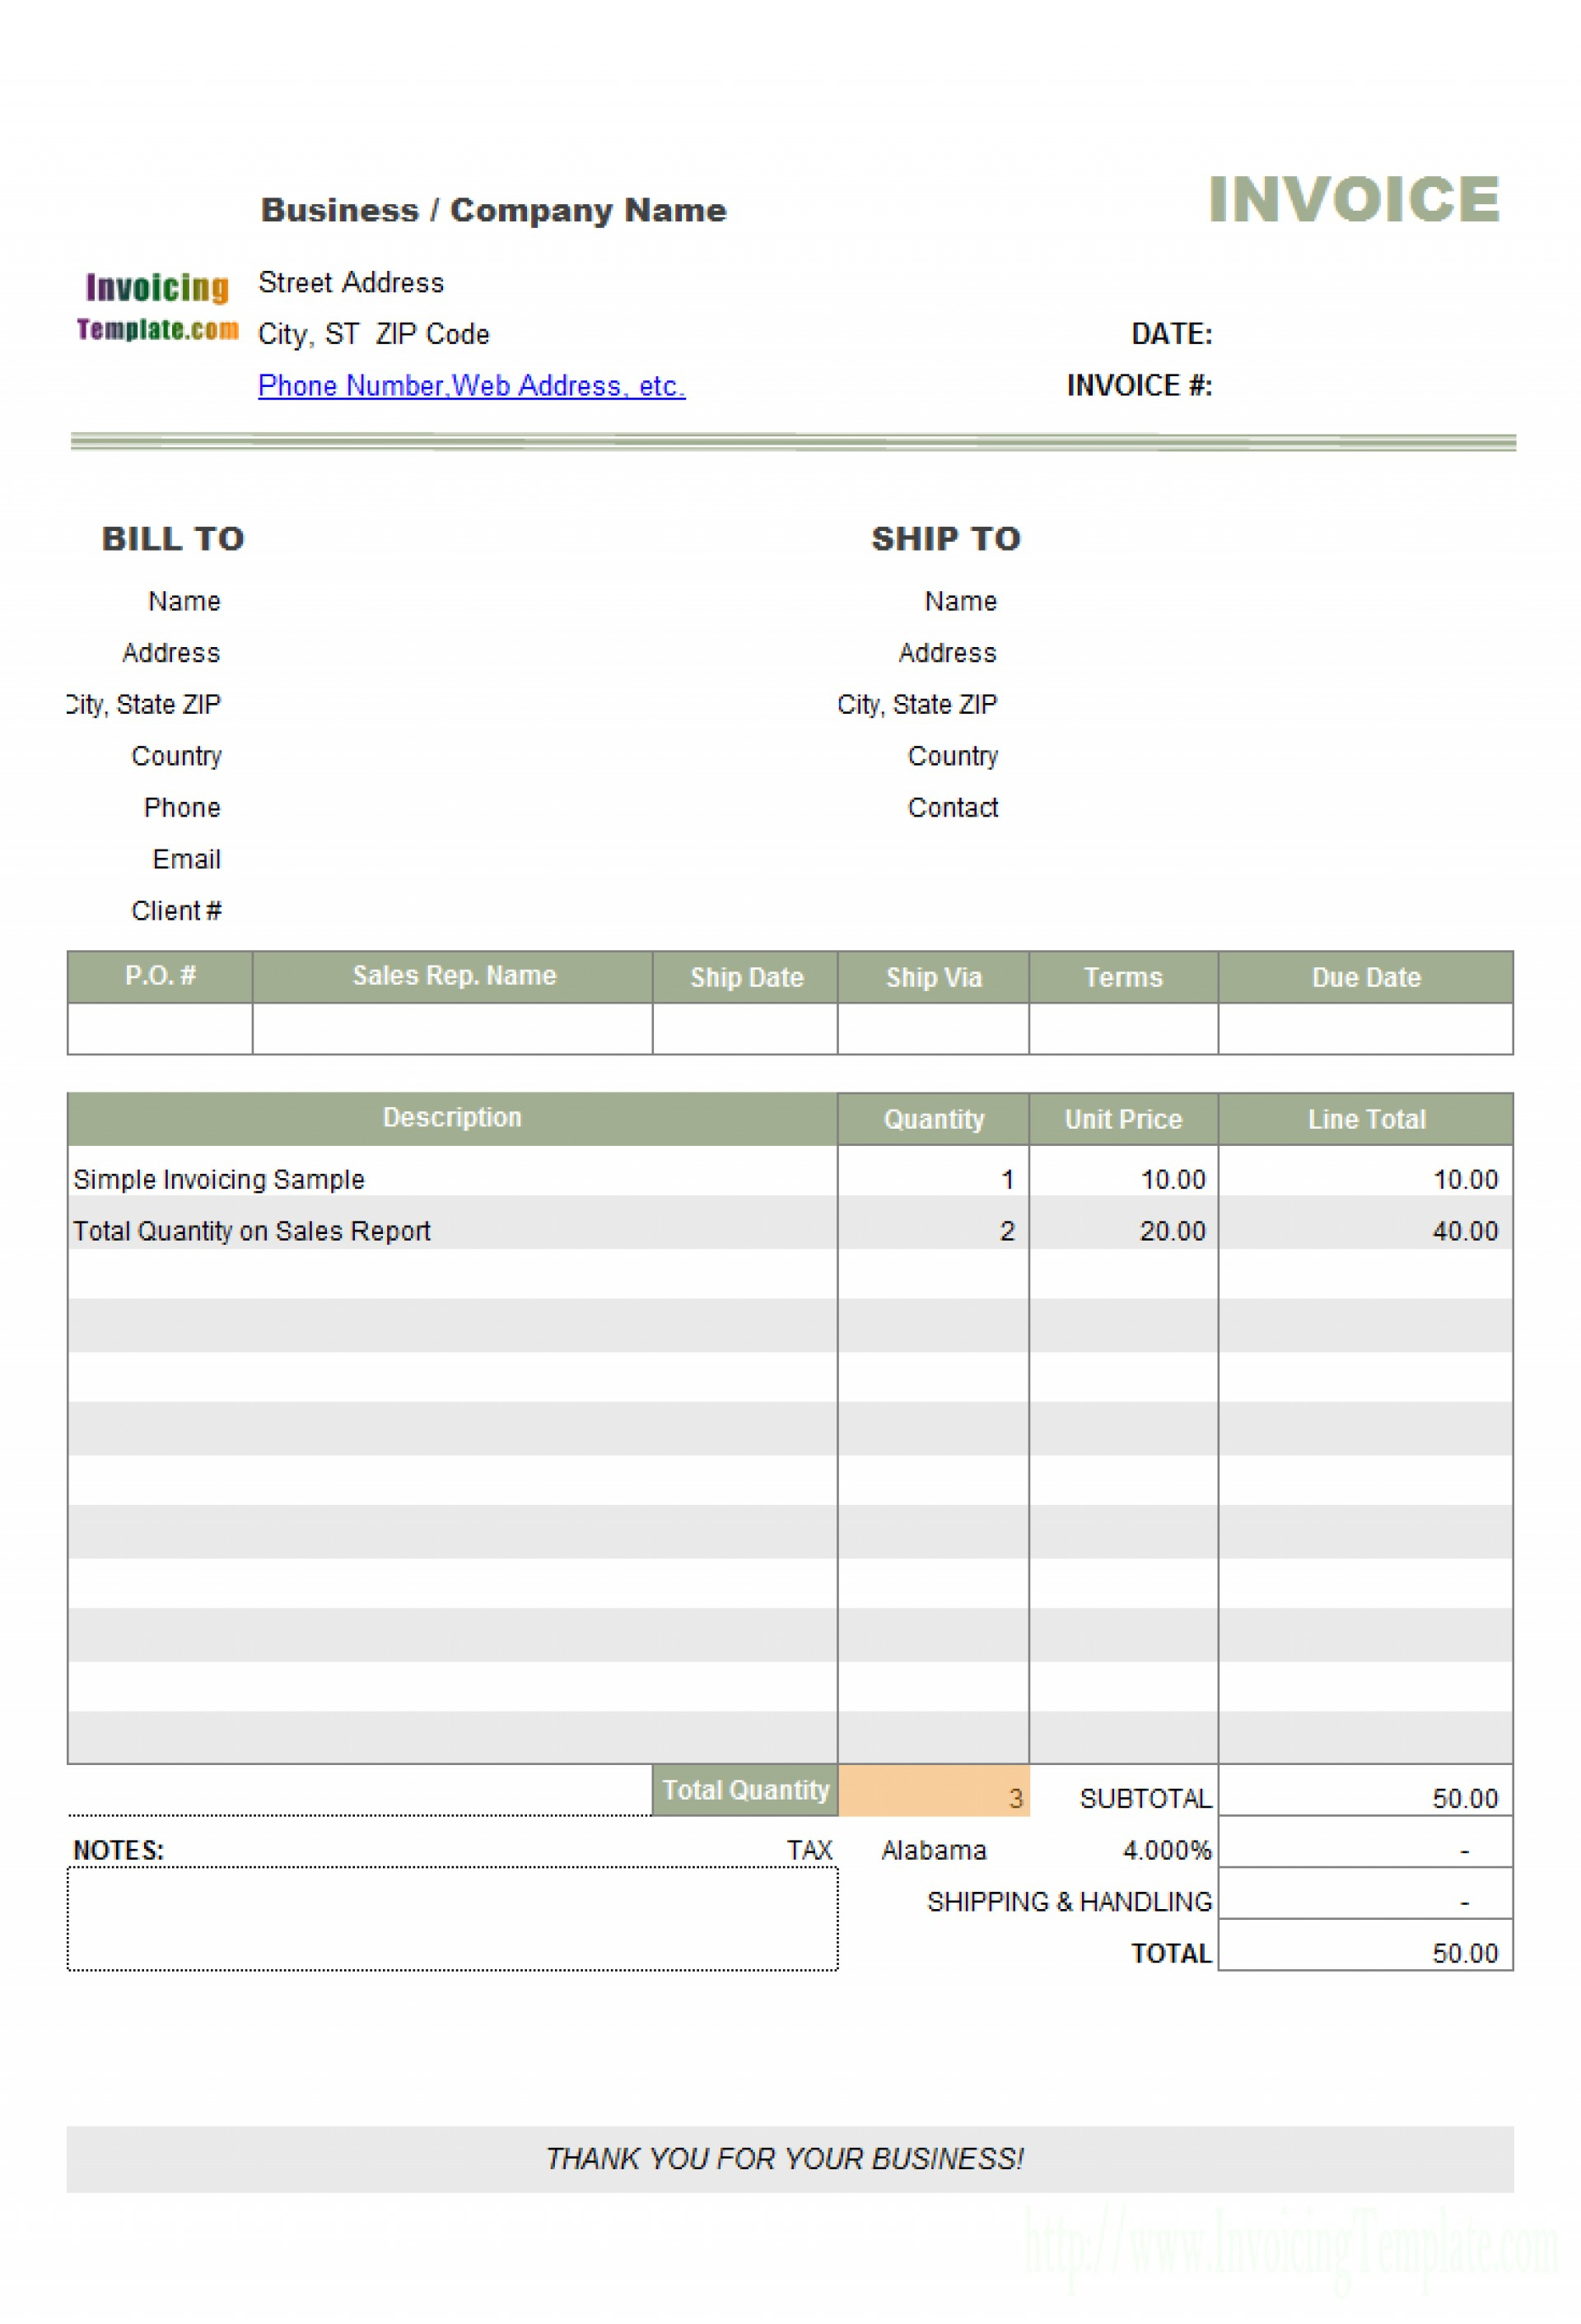 Sole Trader Spreadsheet Template For 025 Template Ideas Proforma Invoice Uk Excel Sole Trader Download